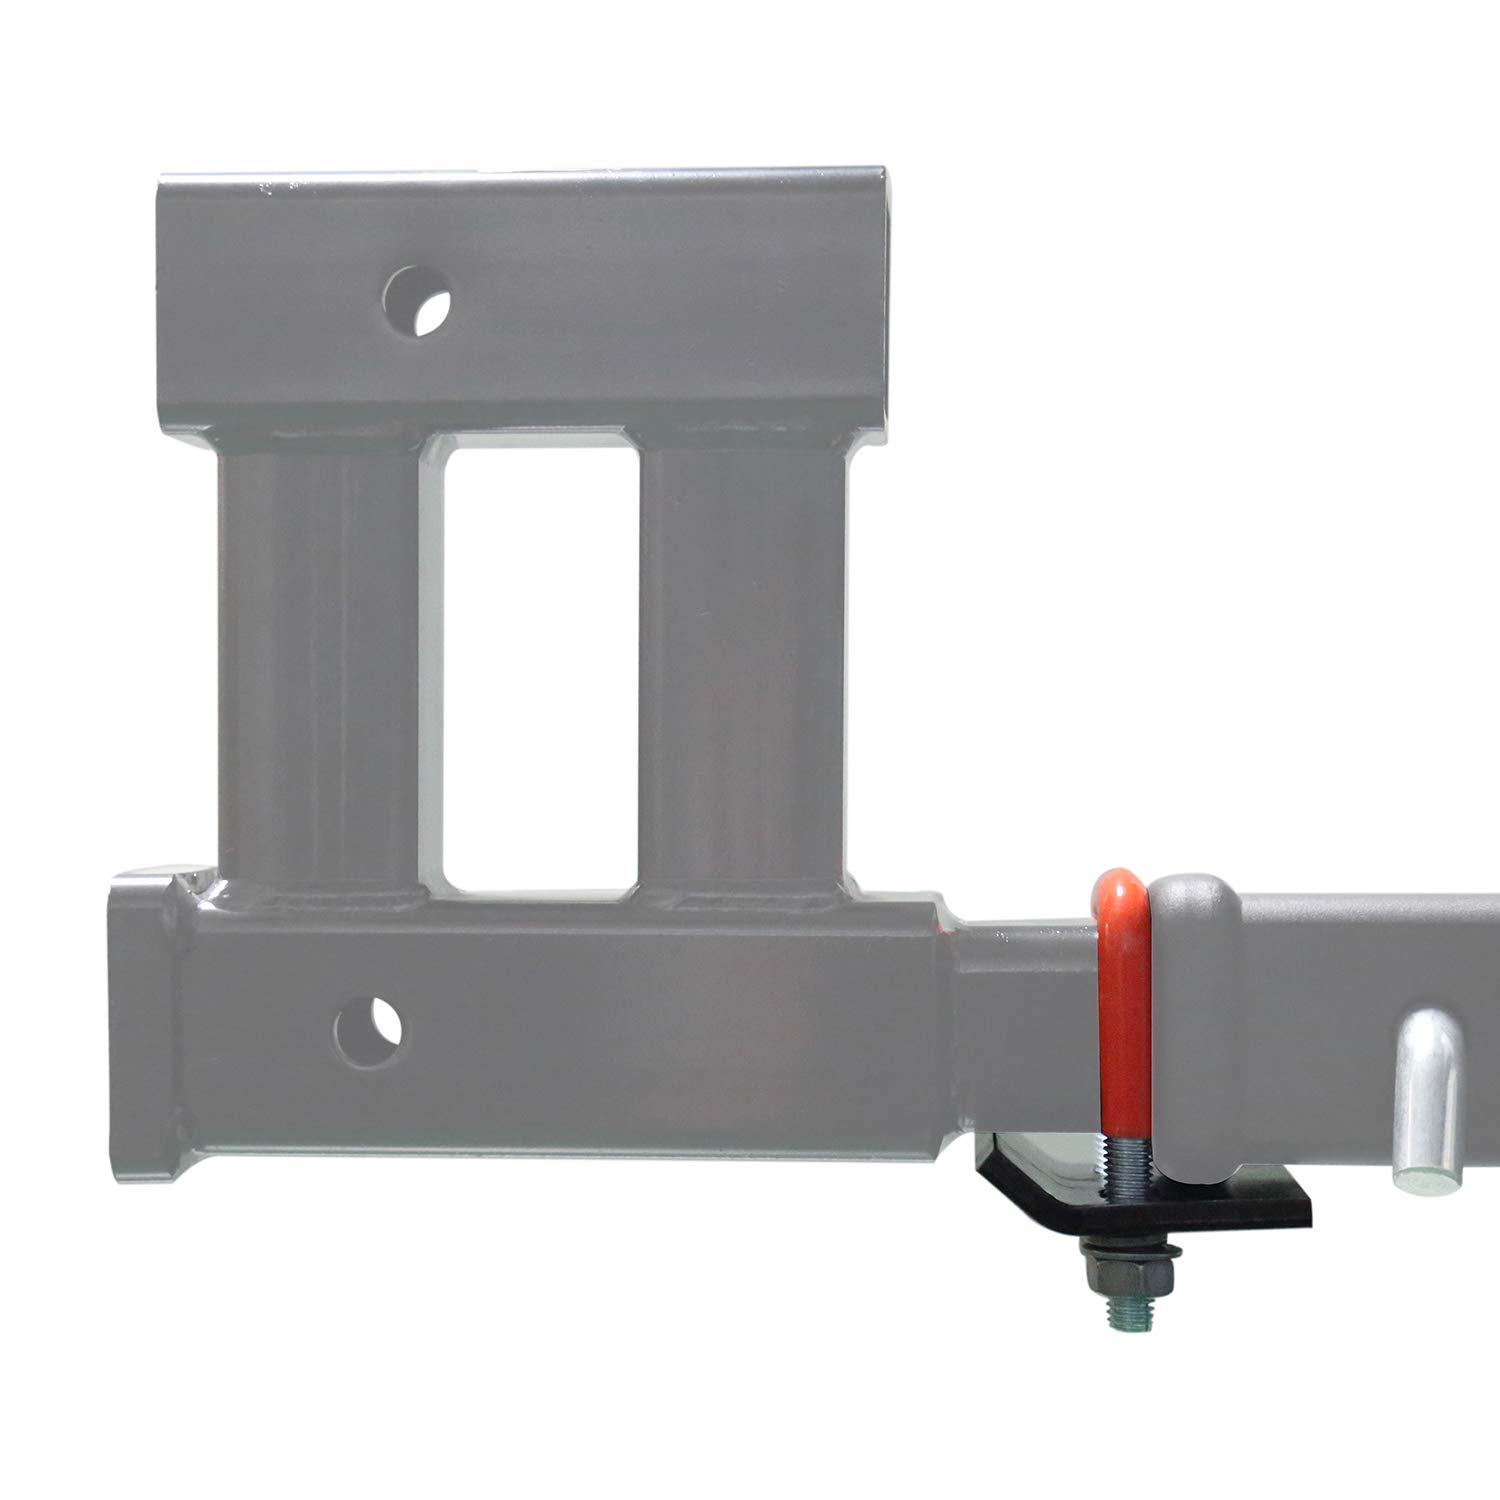 Rubber-Coated No Rattle Noise HiTow Trailer Hitch Tightener Anti-Rattle Stabilizer 2 /& 1.25 Hitch Corrosion Resistant